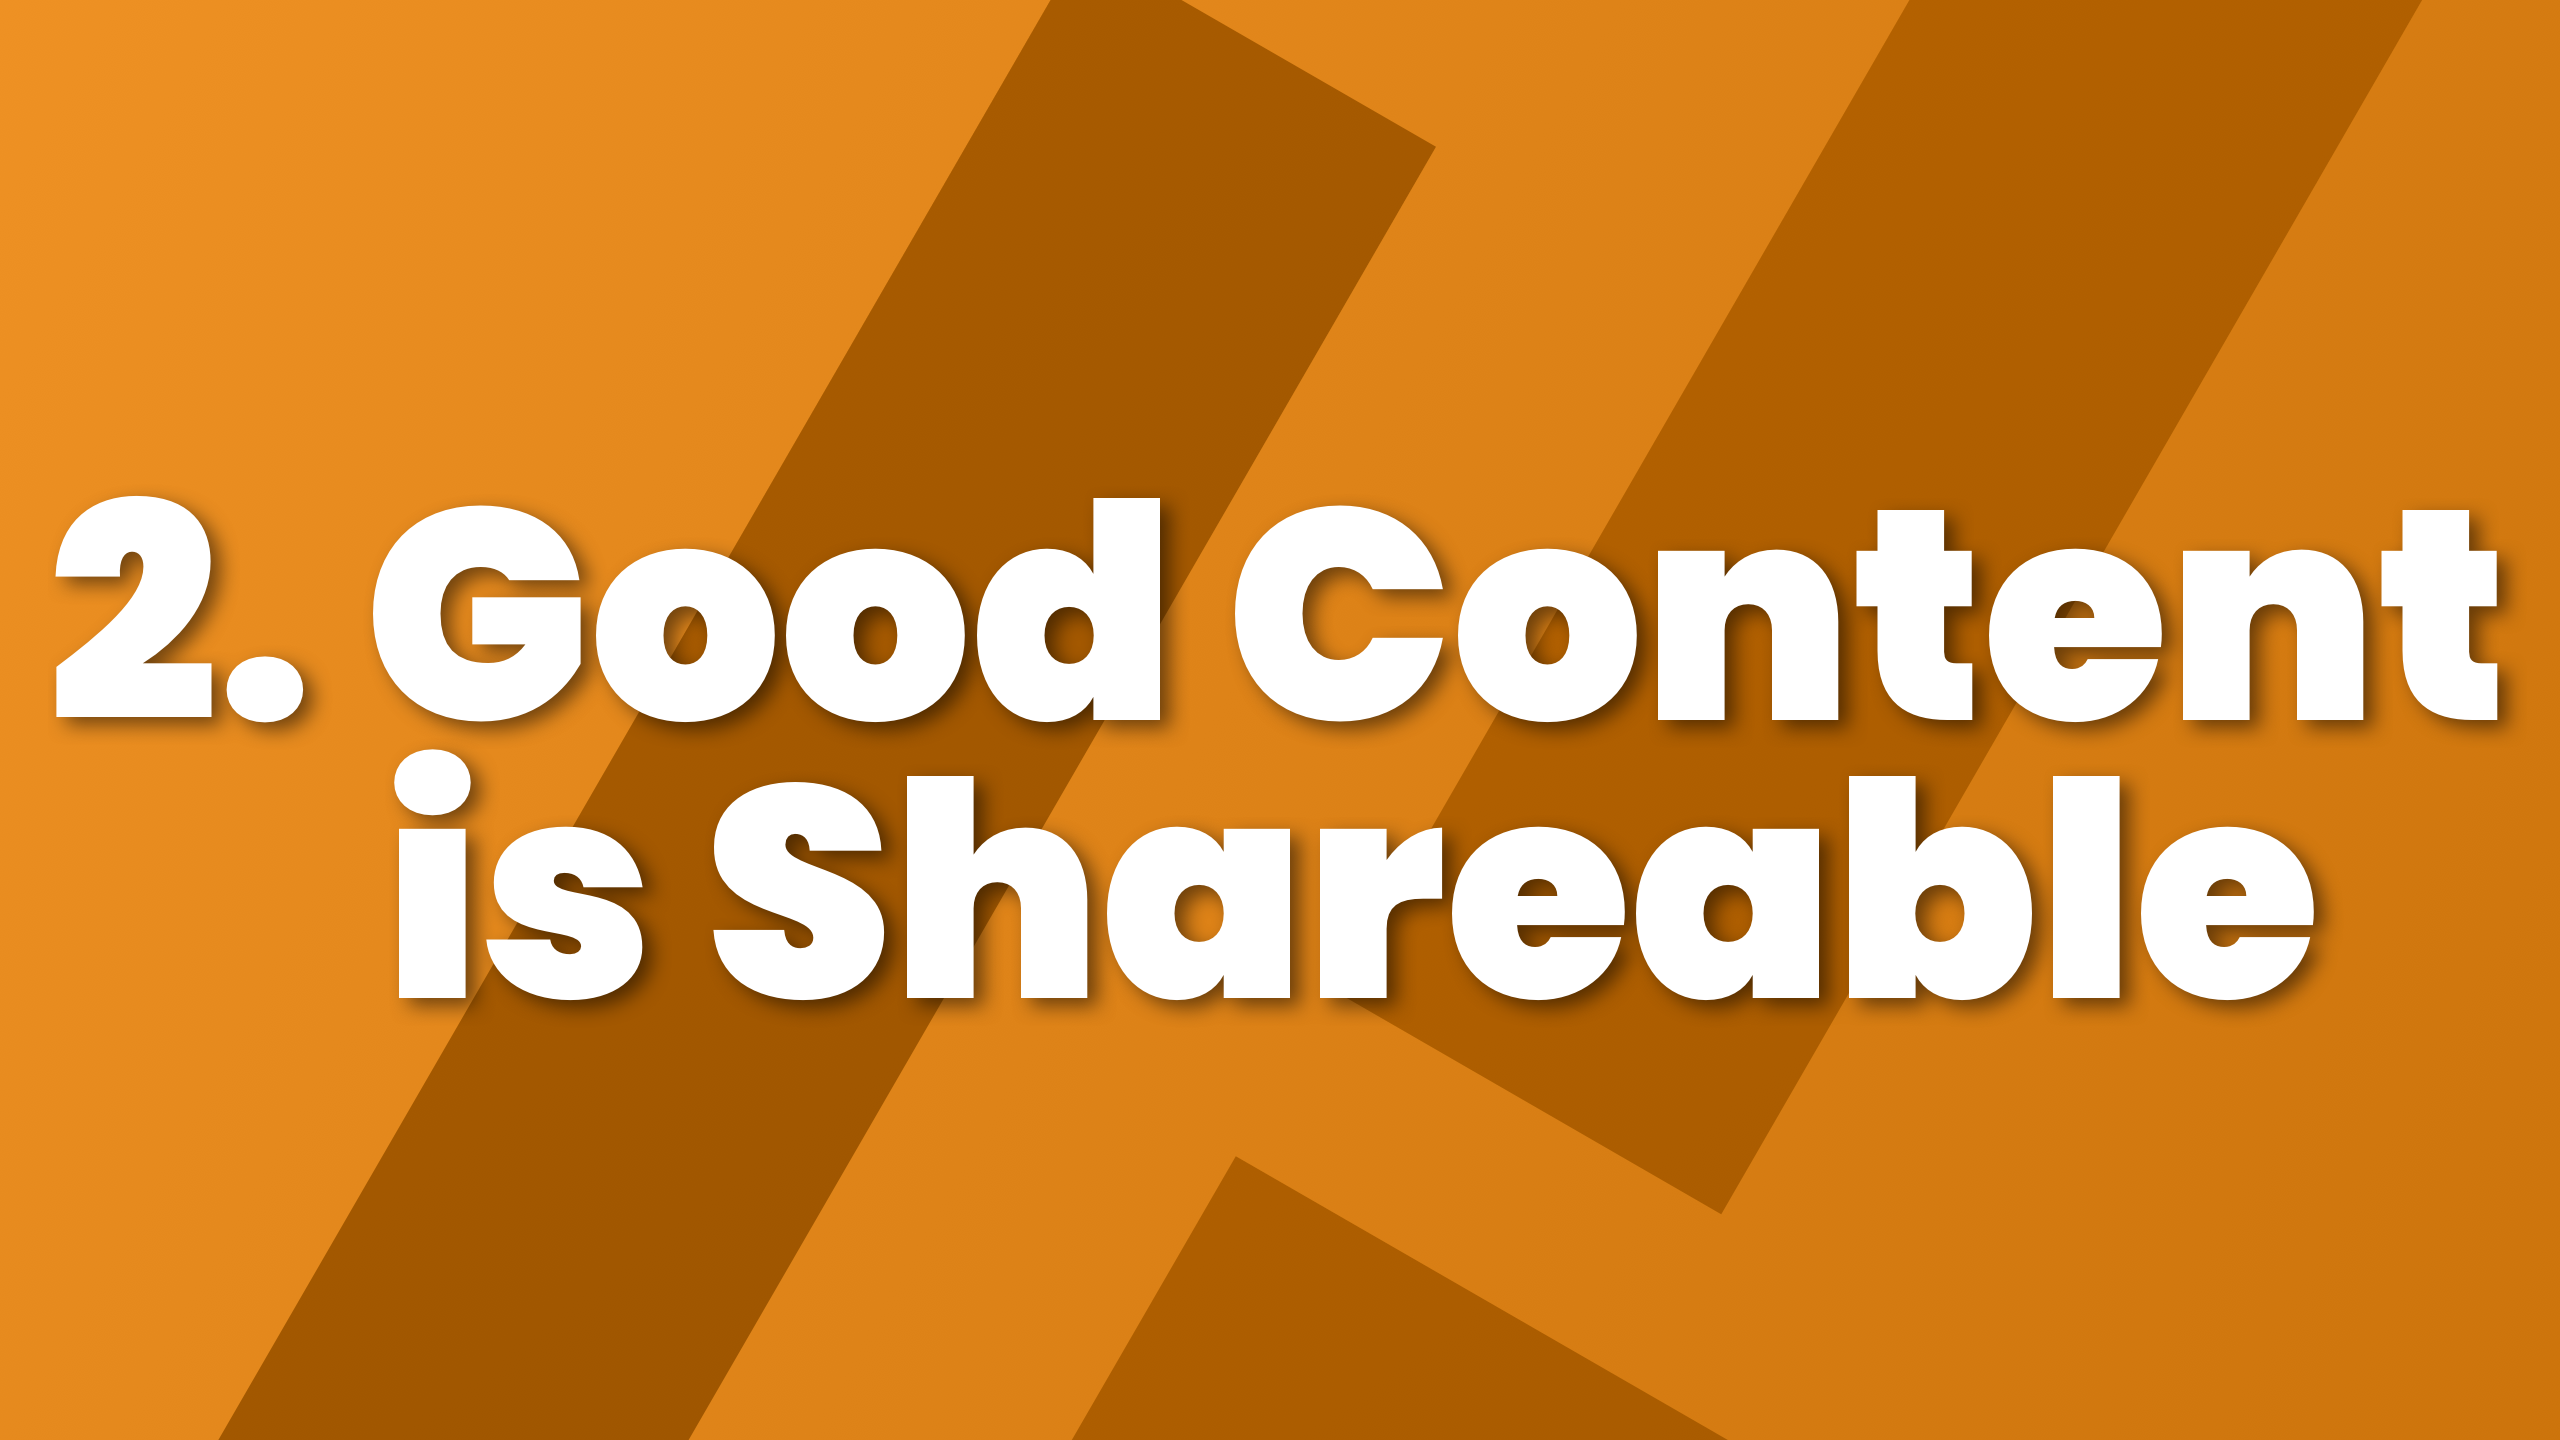 Good Content is Shareable